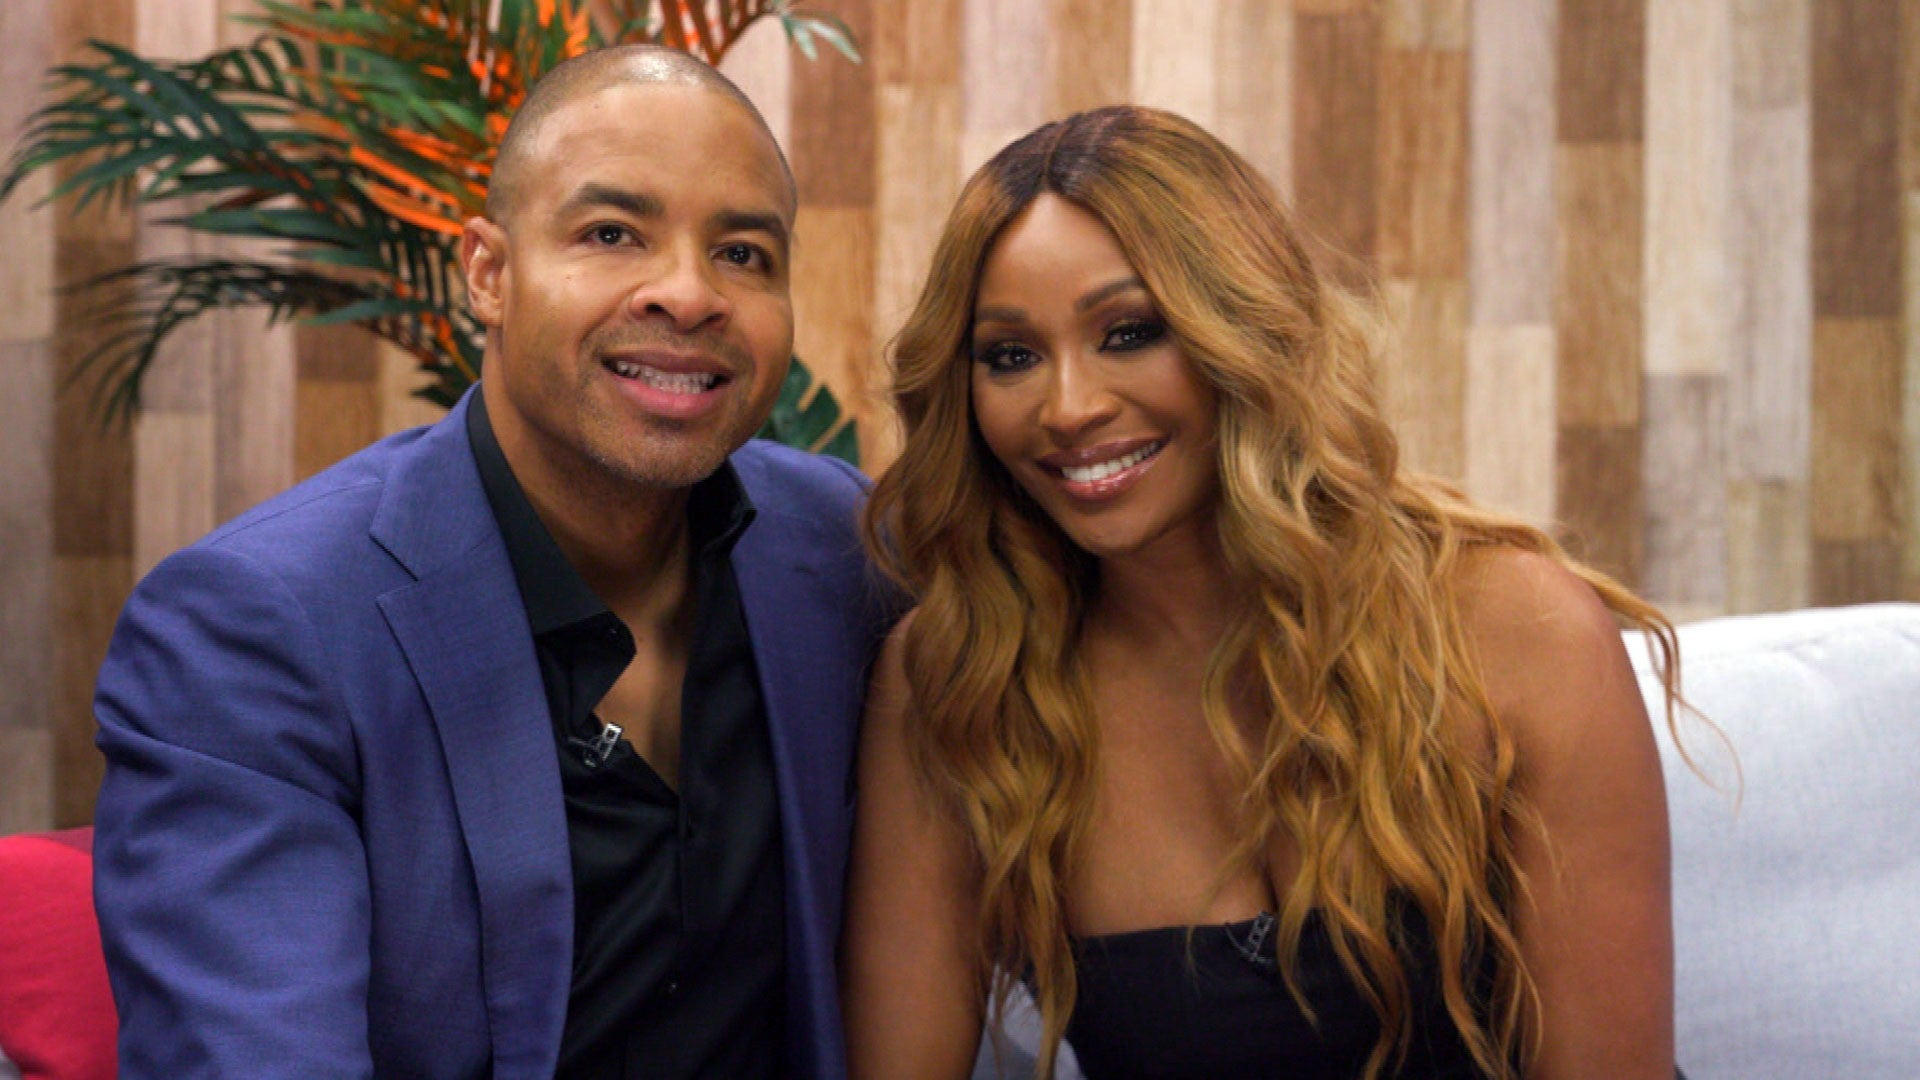 Cynthia Bailey Drops An Optimistic Message About The Future - Check It Out Here